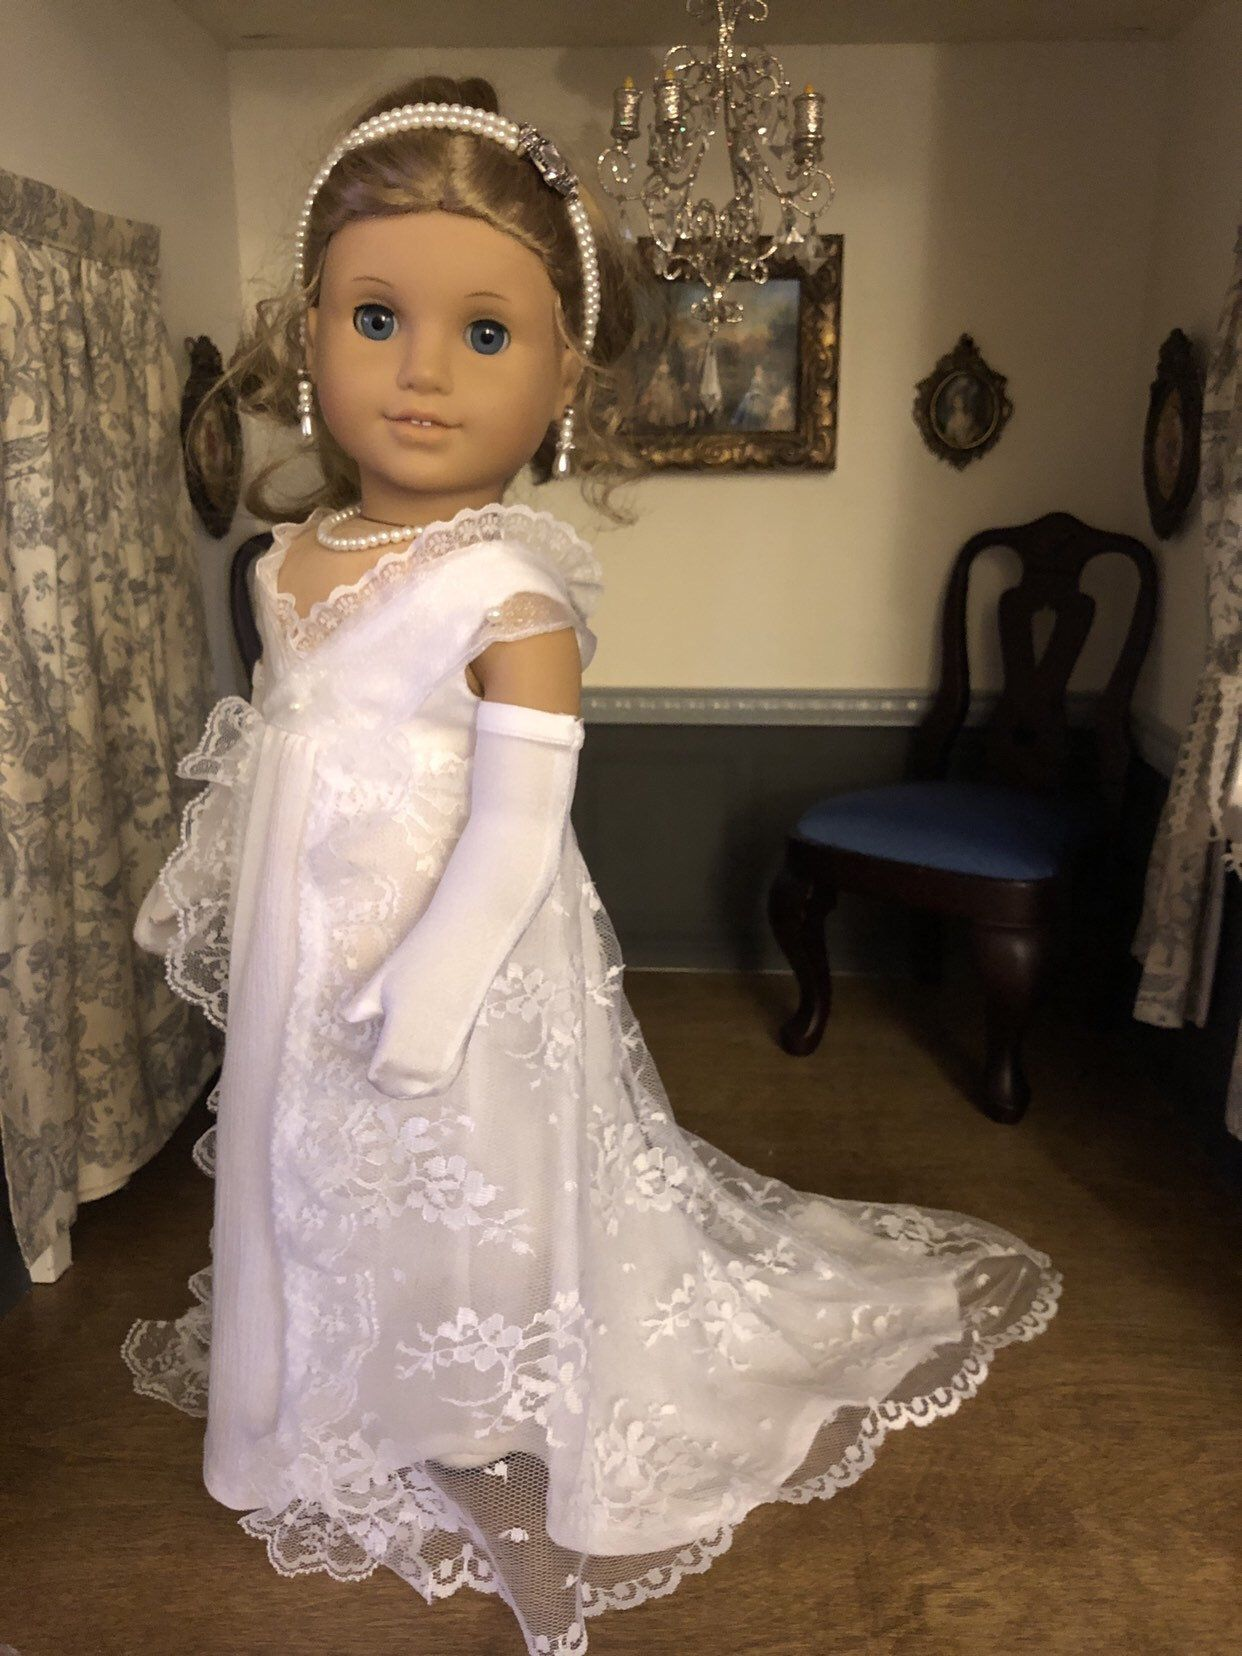 War & Peace 19th Century Lace Gown for American Girl Dolls #americandolls